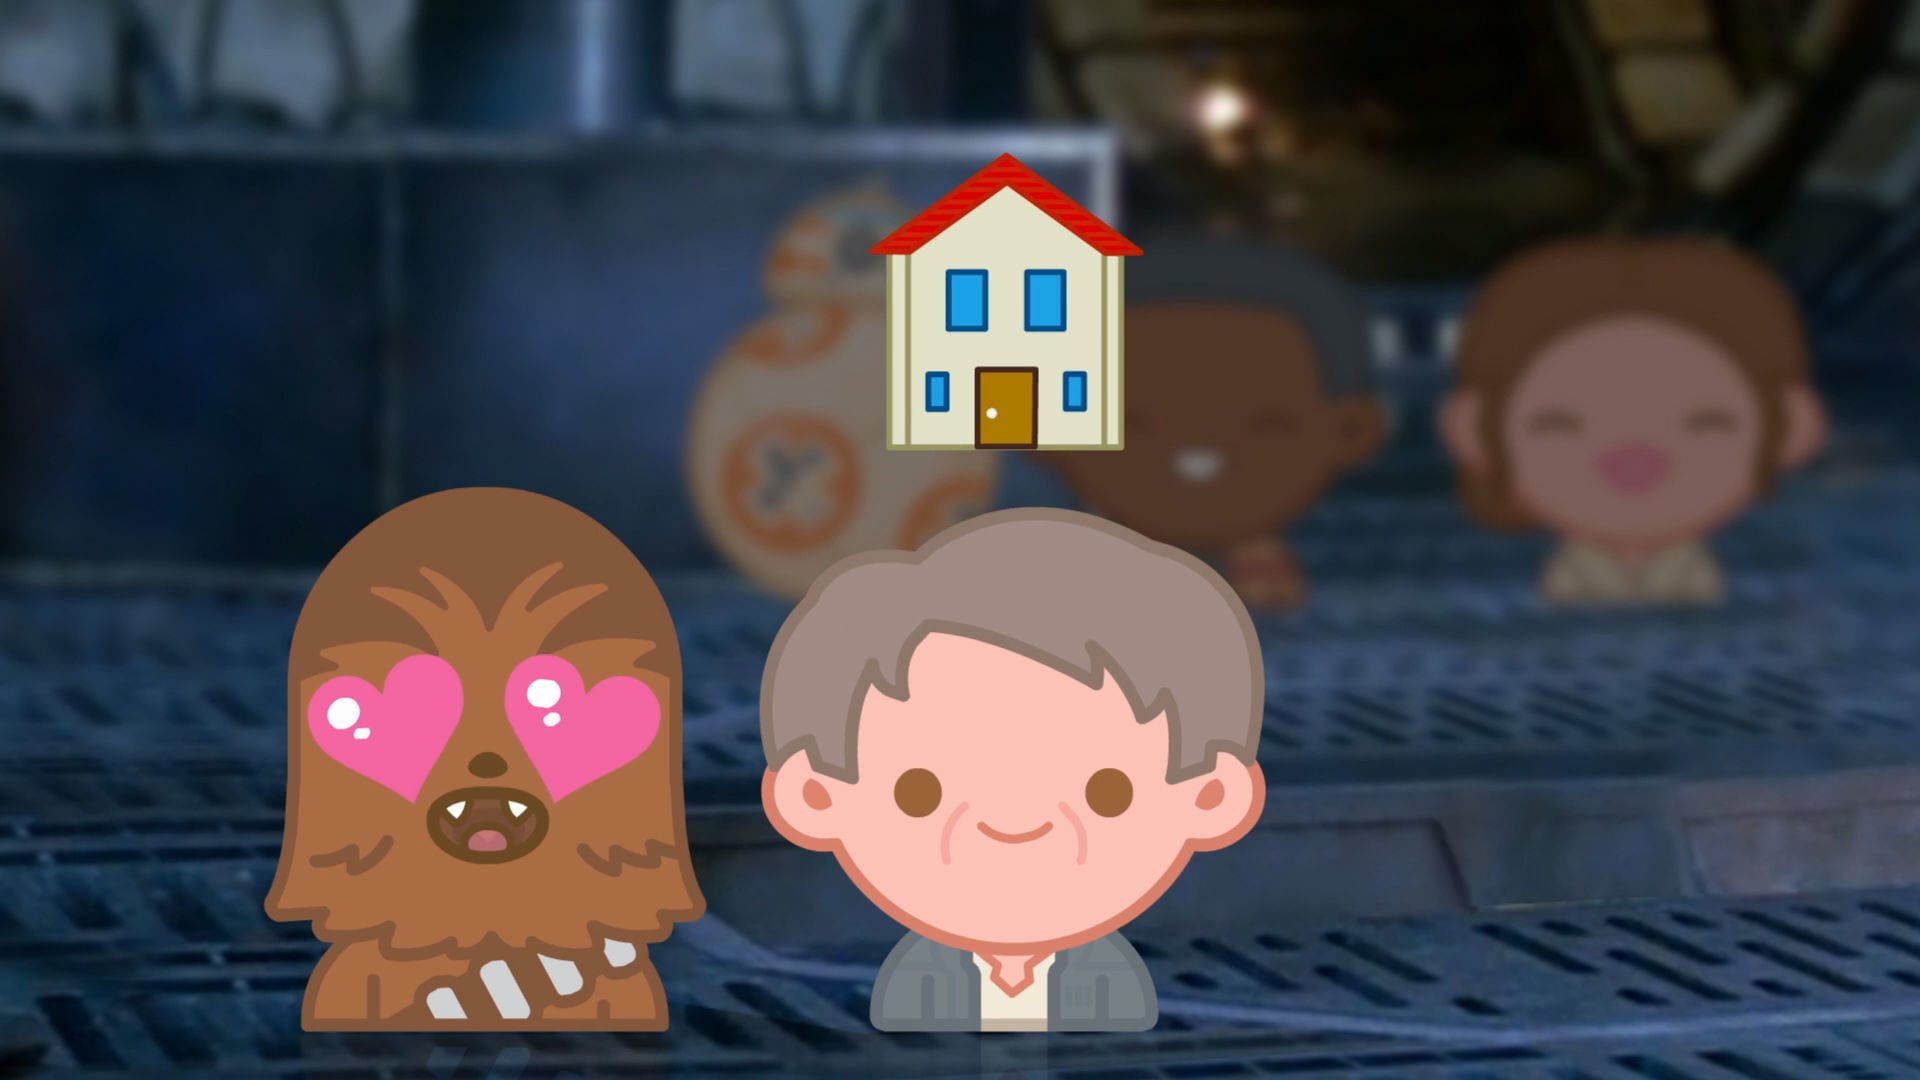 Lucasfilm's Star Wars The Force Awakens As Told By Emoji